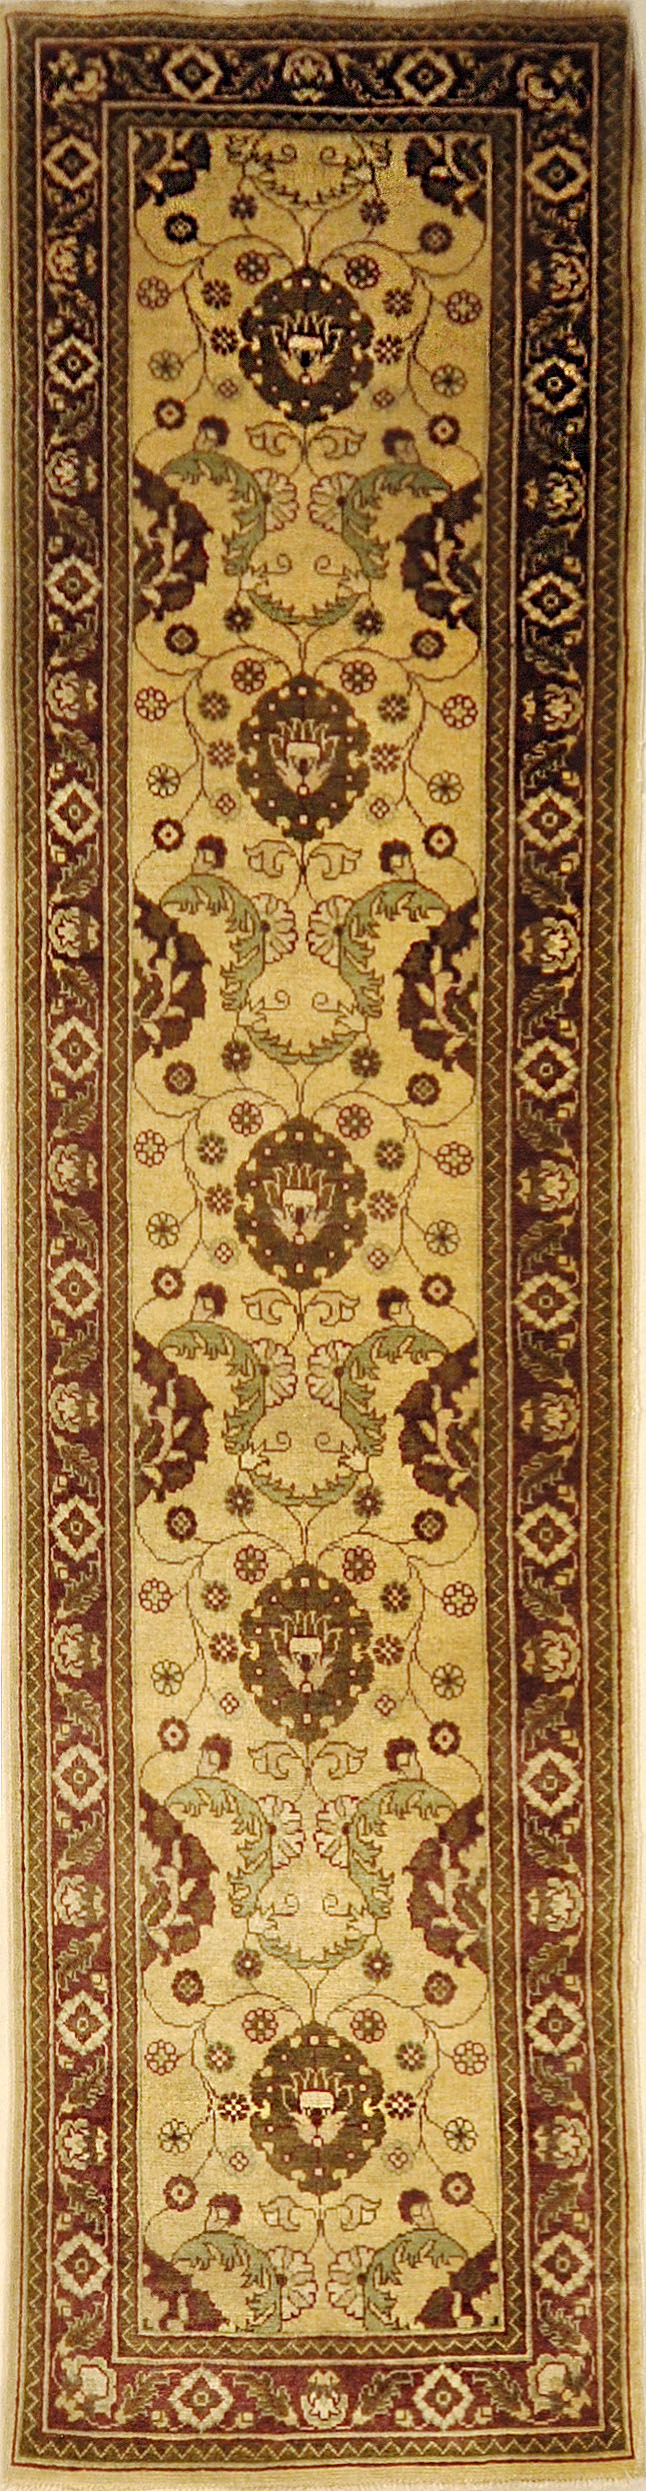 Ziegler and Co Pak Oushak Runner. Designed by Michael Kourosh and woven by Ziegler & Company. Sold by Santa Barbara Design Center, Rugs and More.